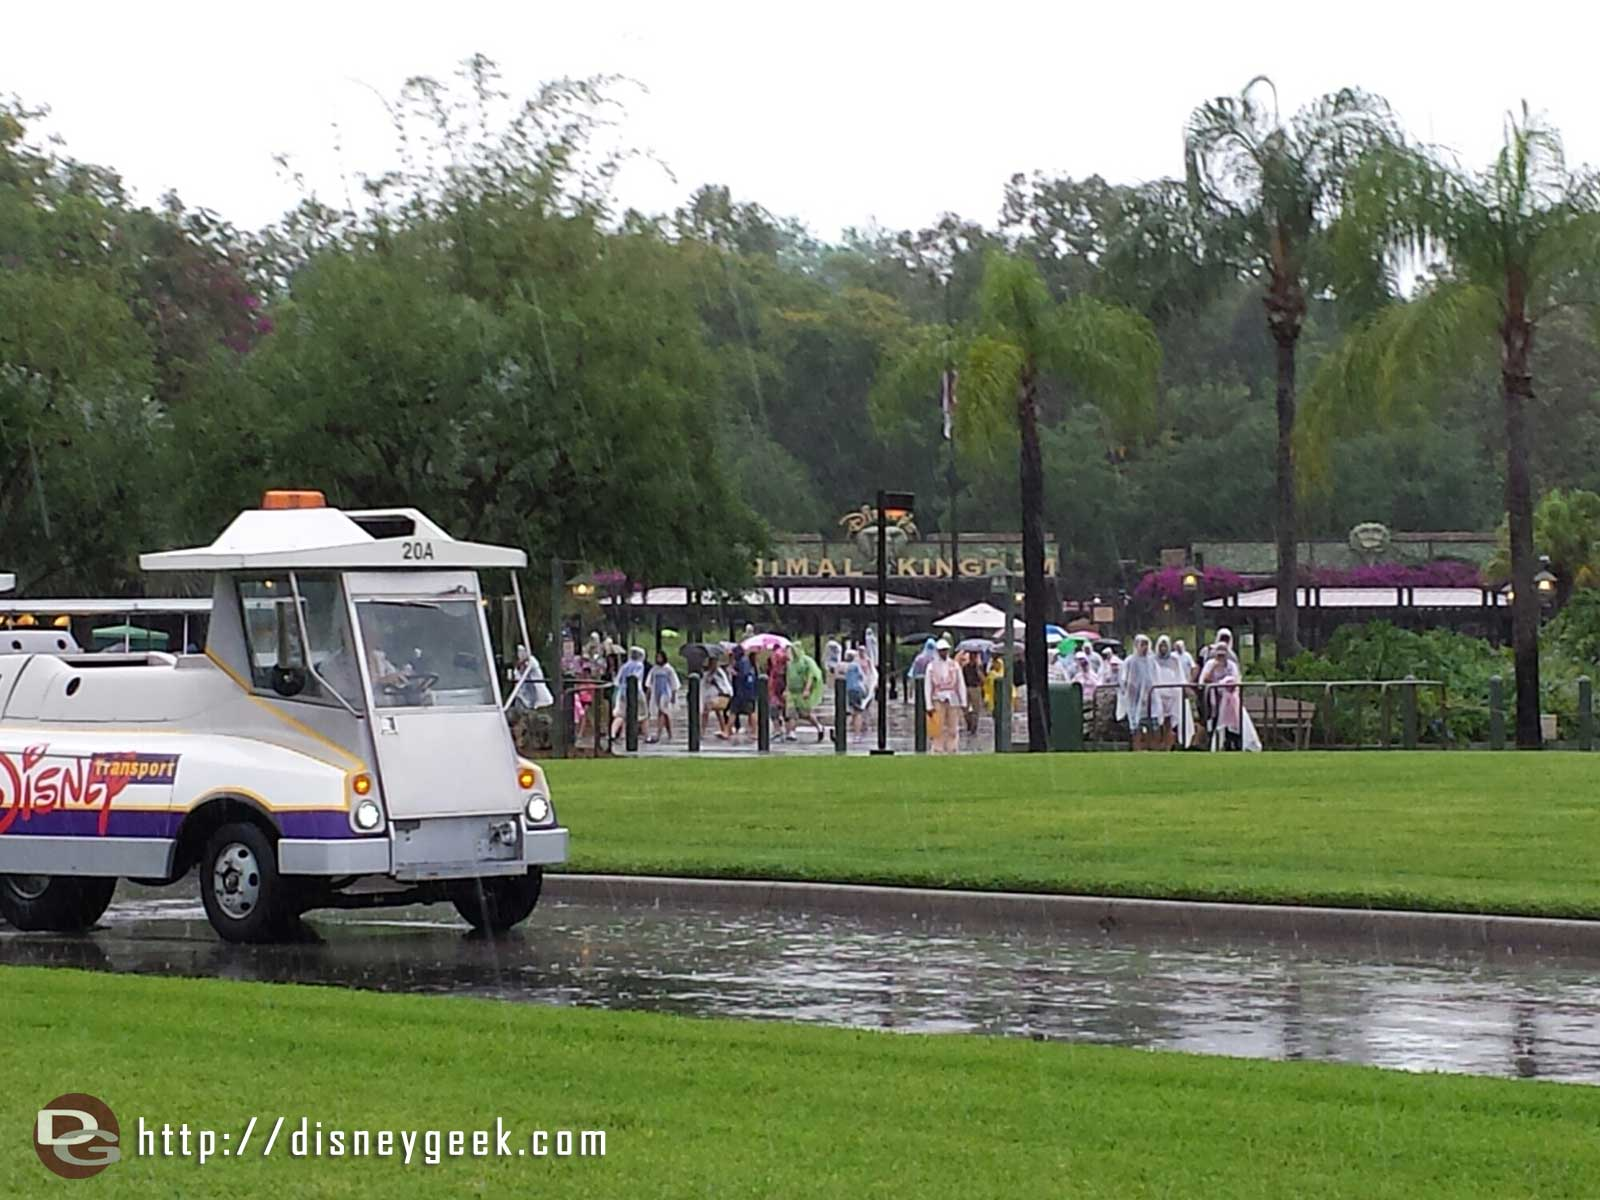 Transferred buses at Disney's Animal Kingdom